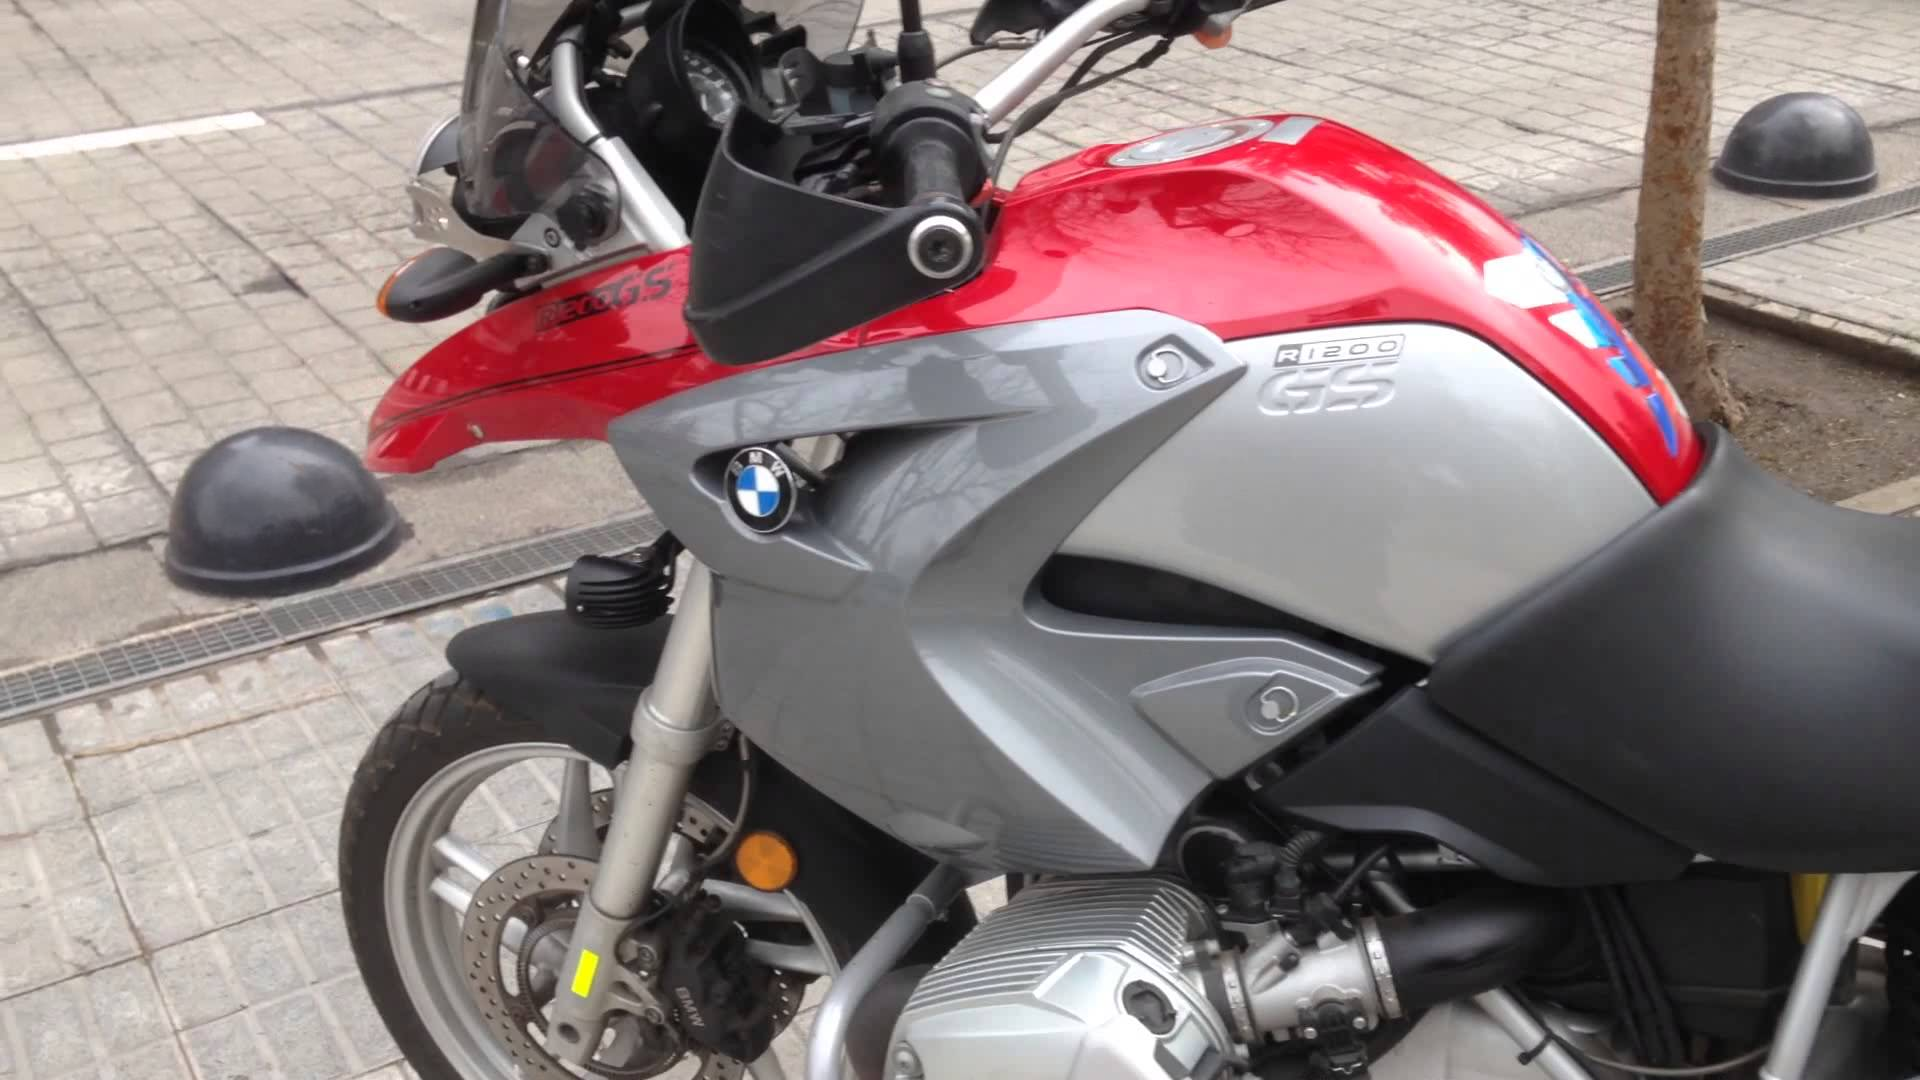 BMW R1200GS images #7960